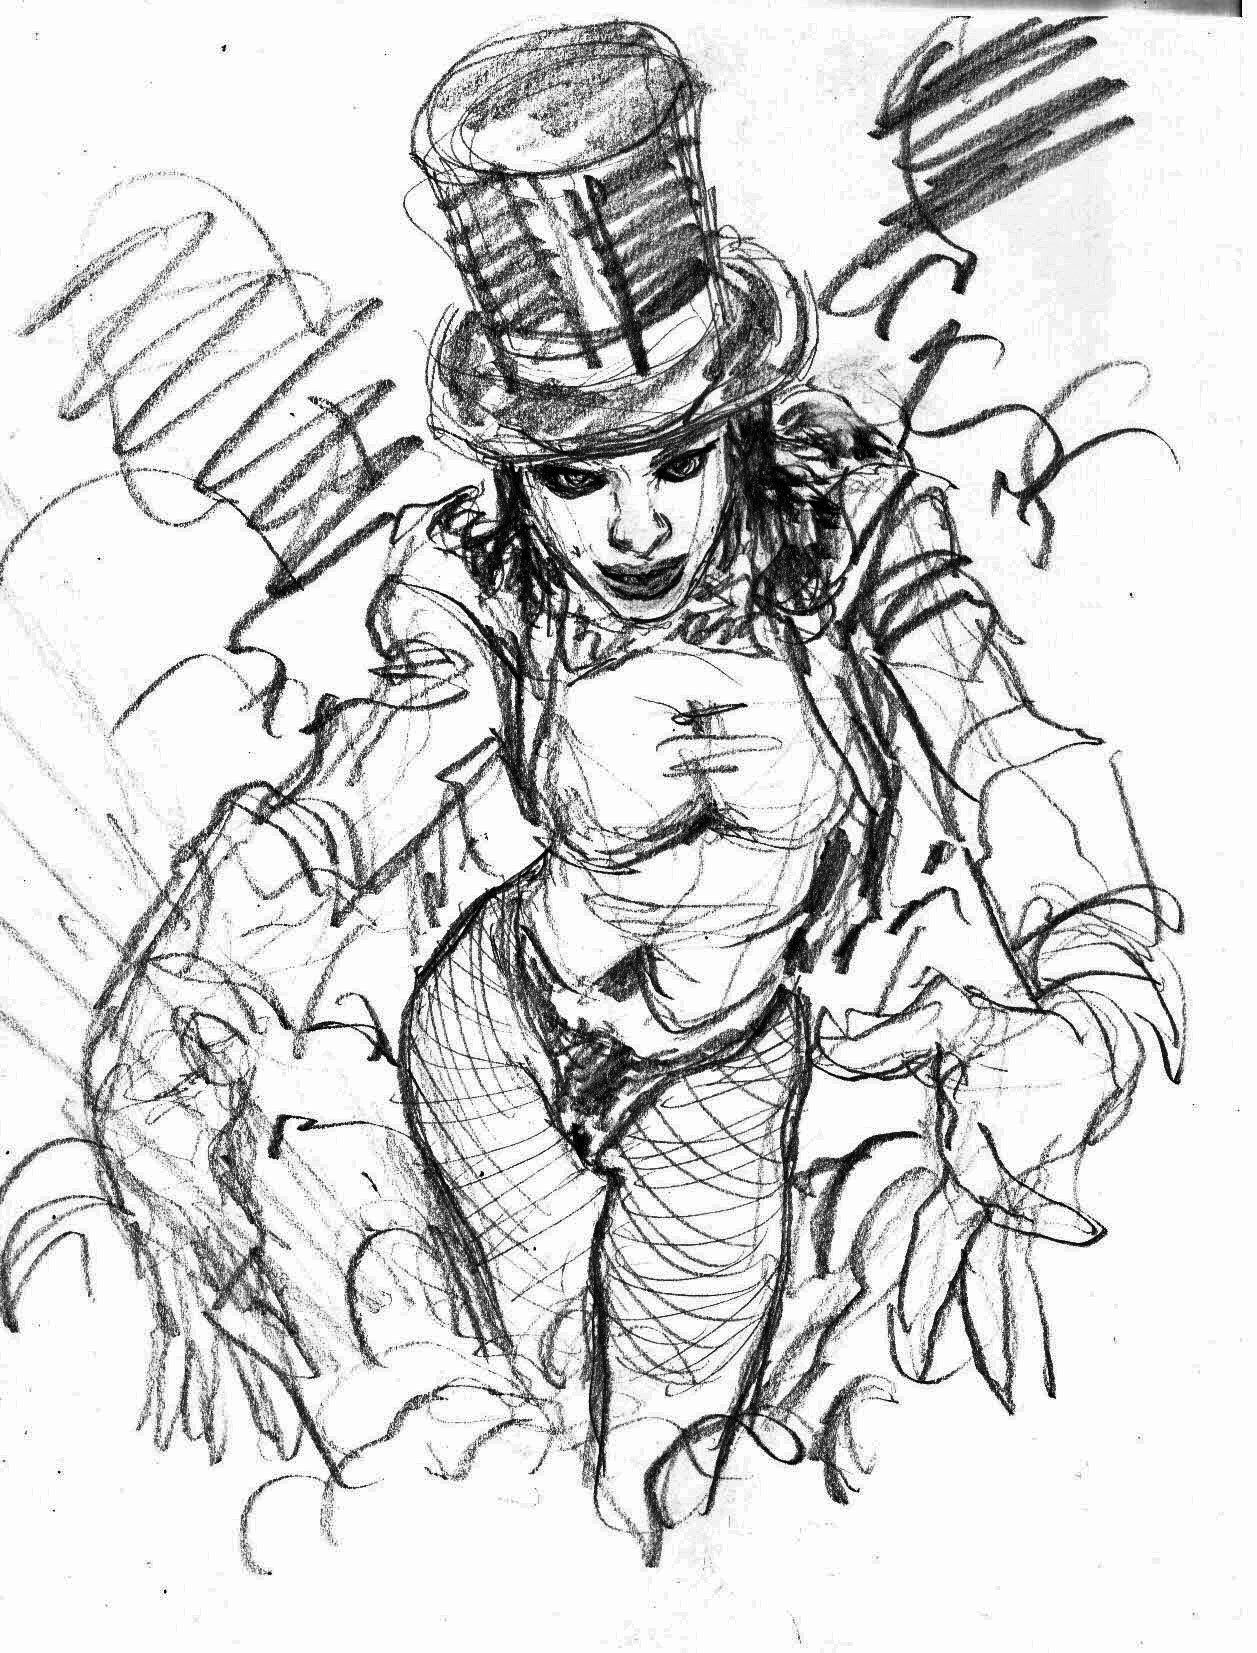 zatanna burlesque sketch v4 mark beachum original art supergurlz